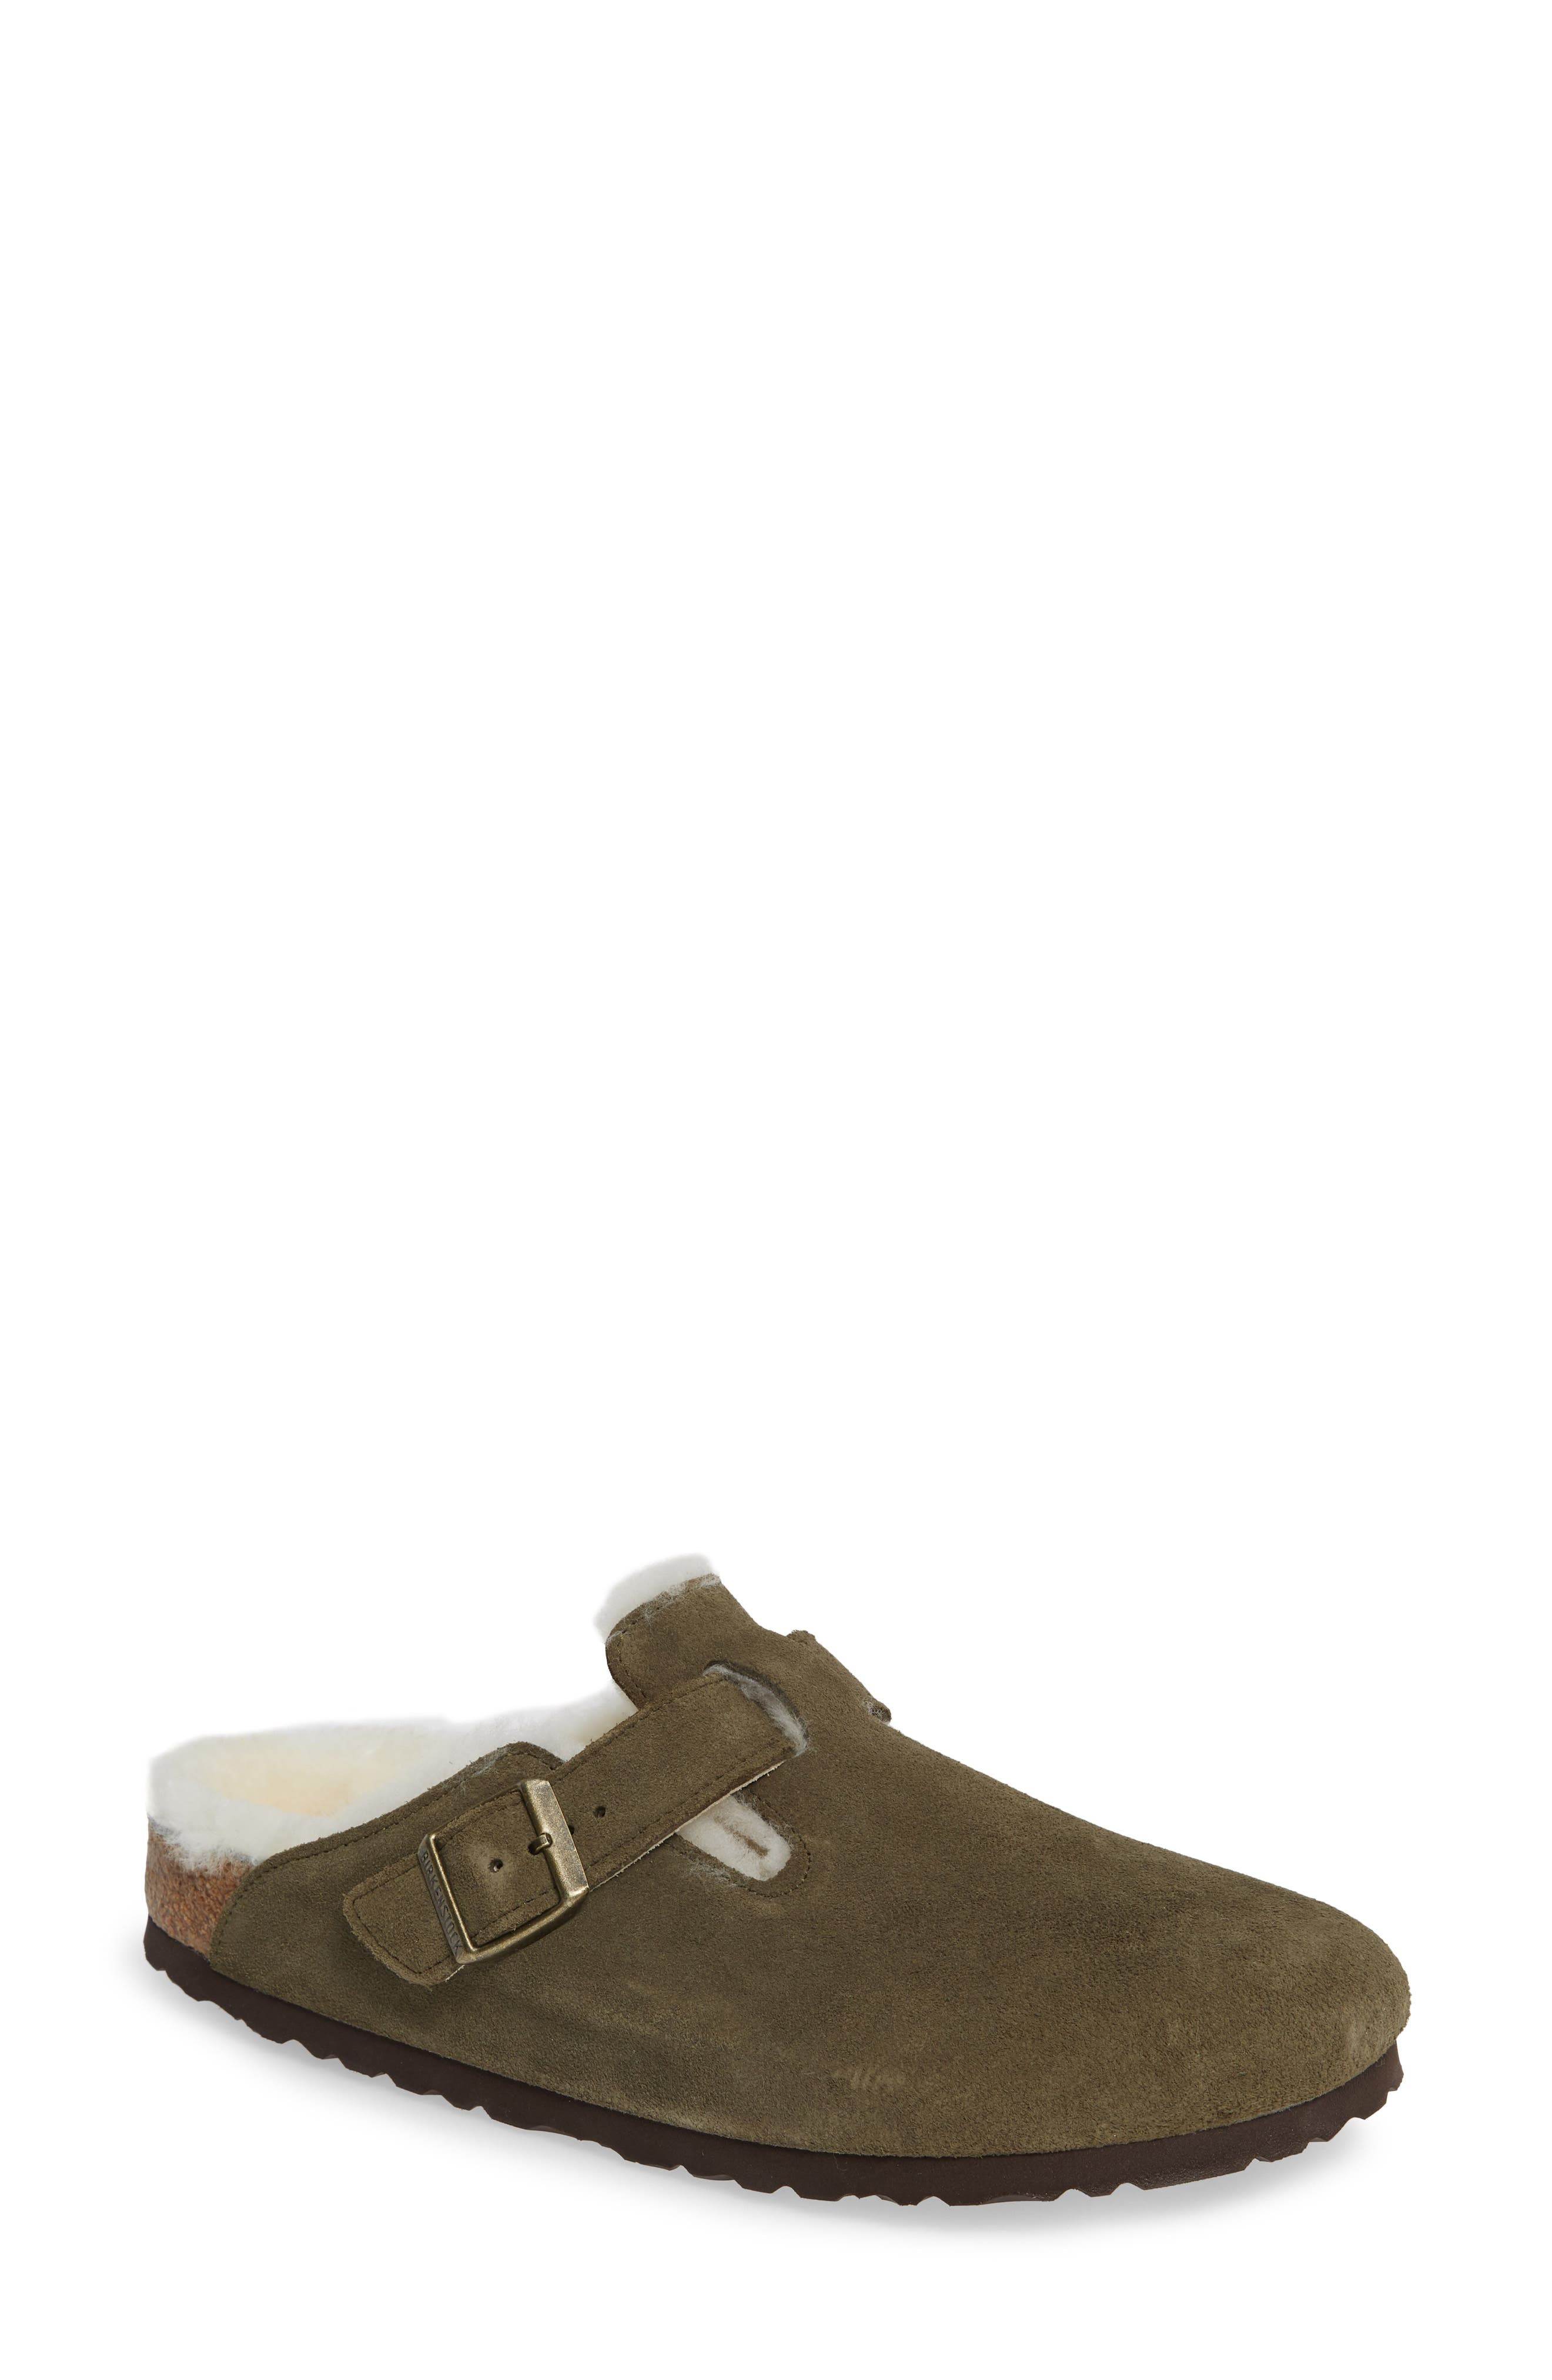 'Boston' Genuine Shearling Lined Clog,                         Main,                         color, FOREST/ NATURAL SUEDE